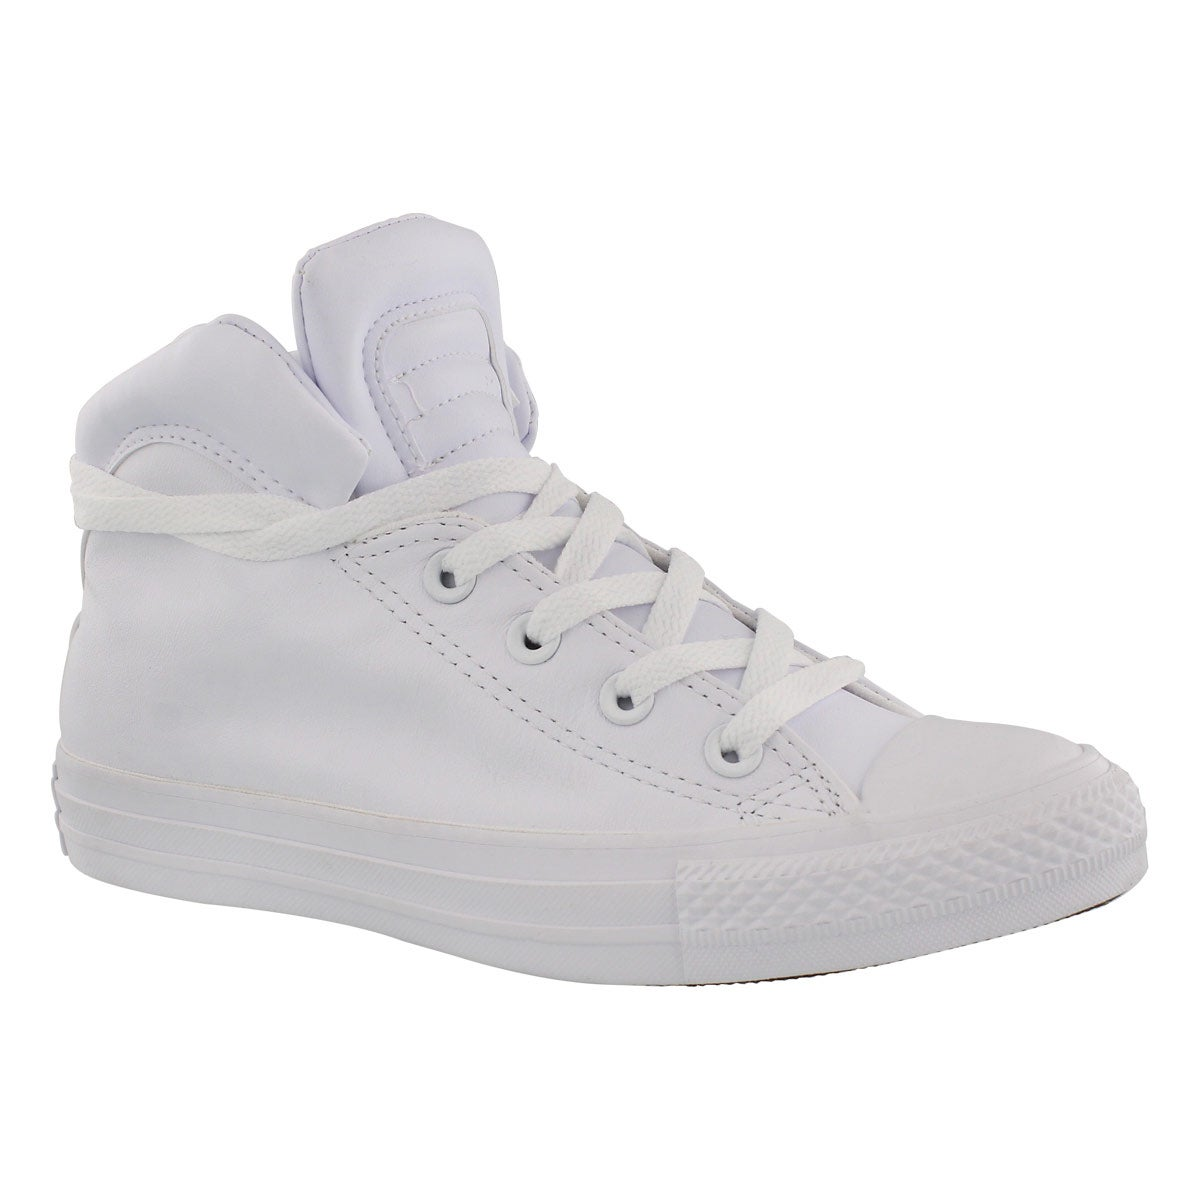 Women's CT ALL STAR BROOKLINE MID white sneakers